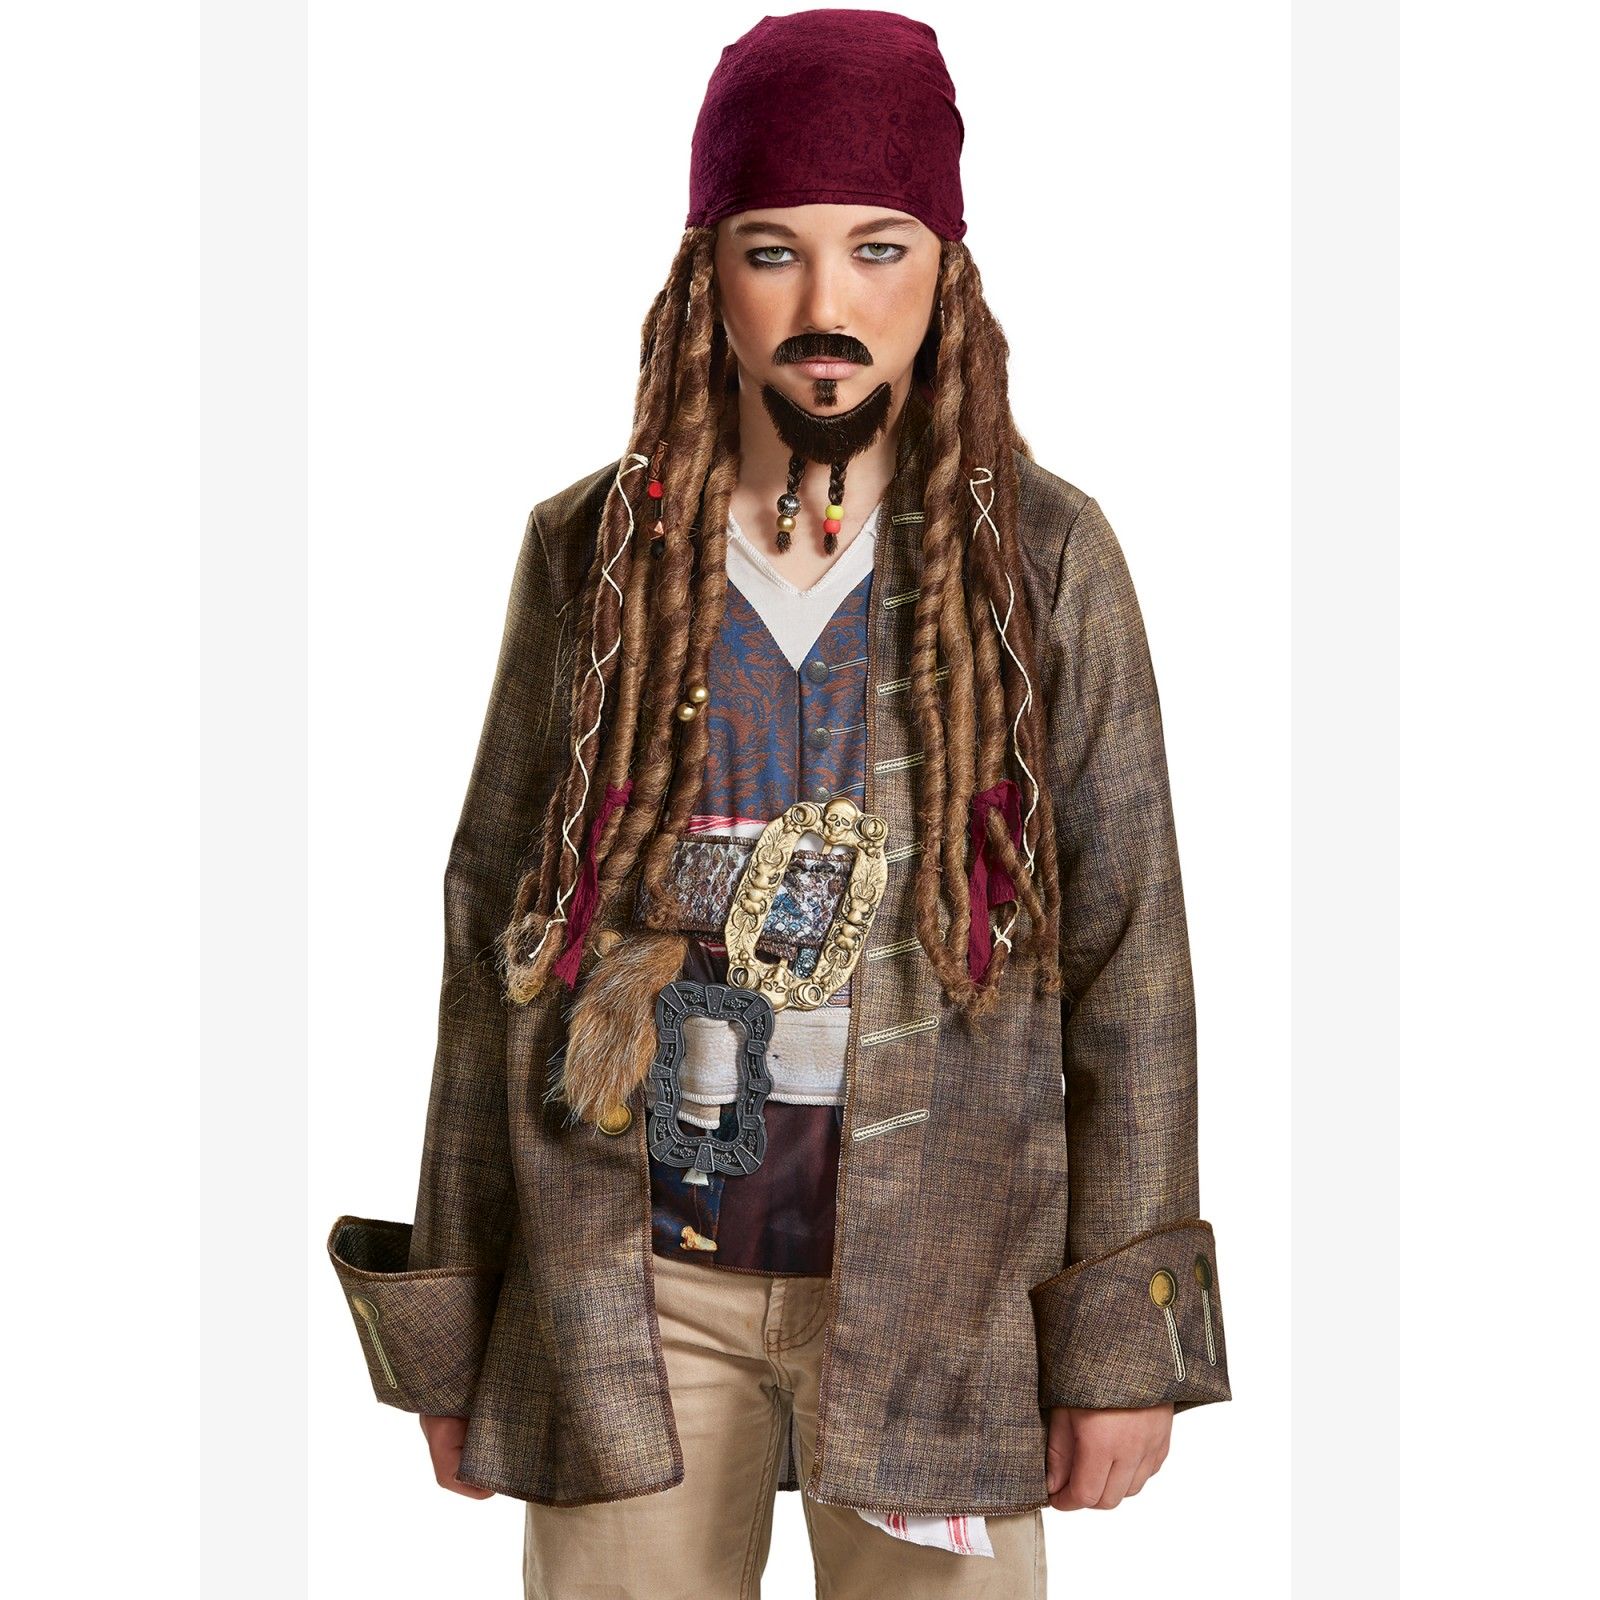 Pirates of the Caribbean 5: Child Goatee & Mustache by Disguise